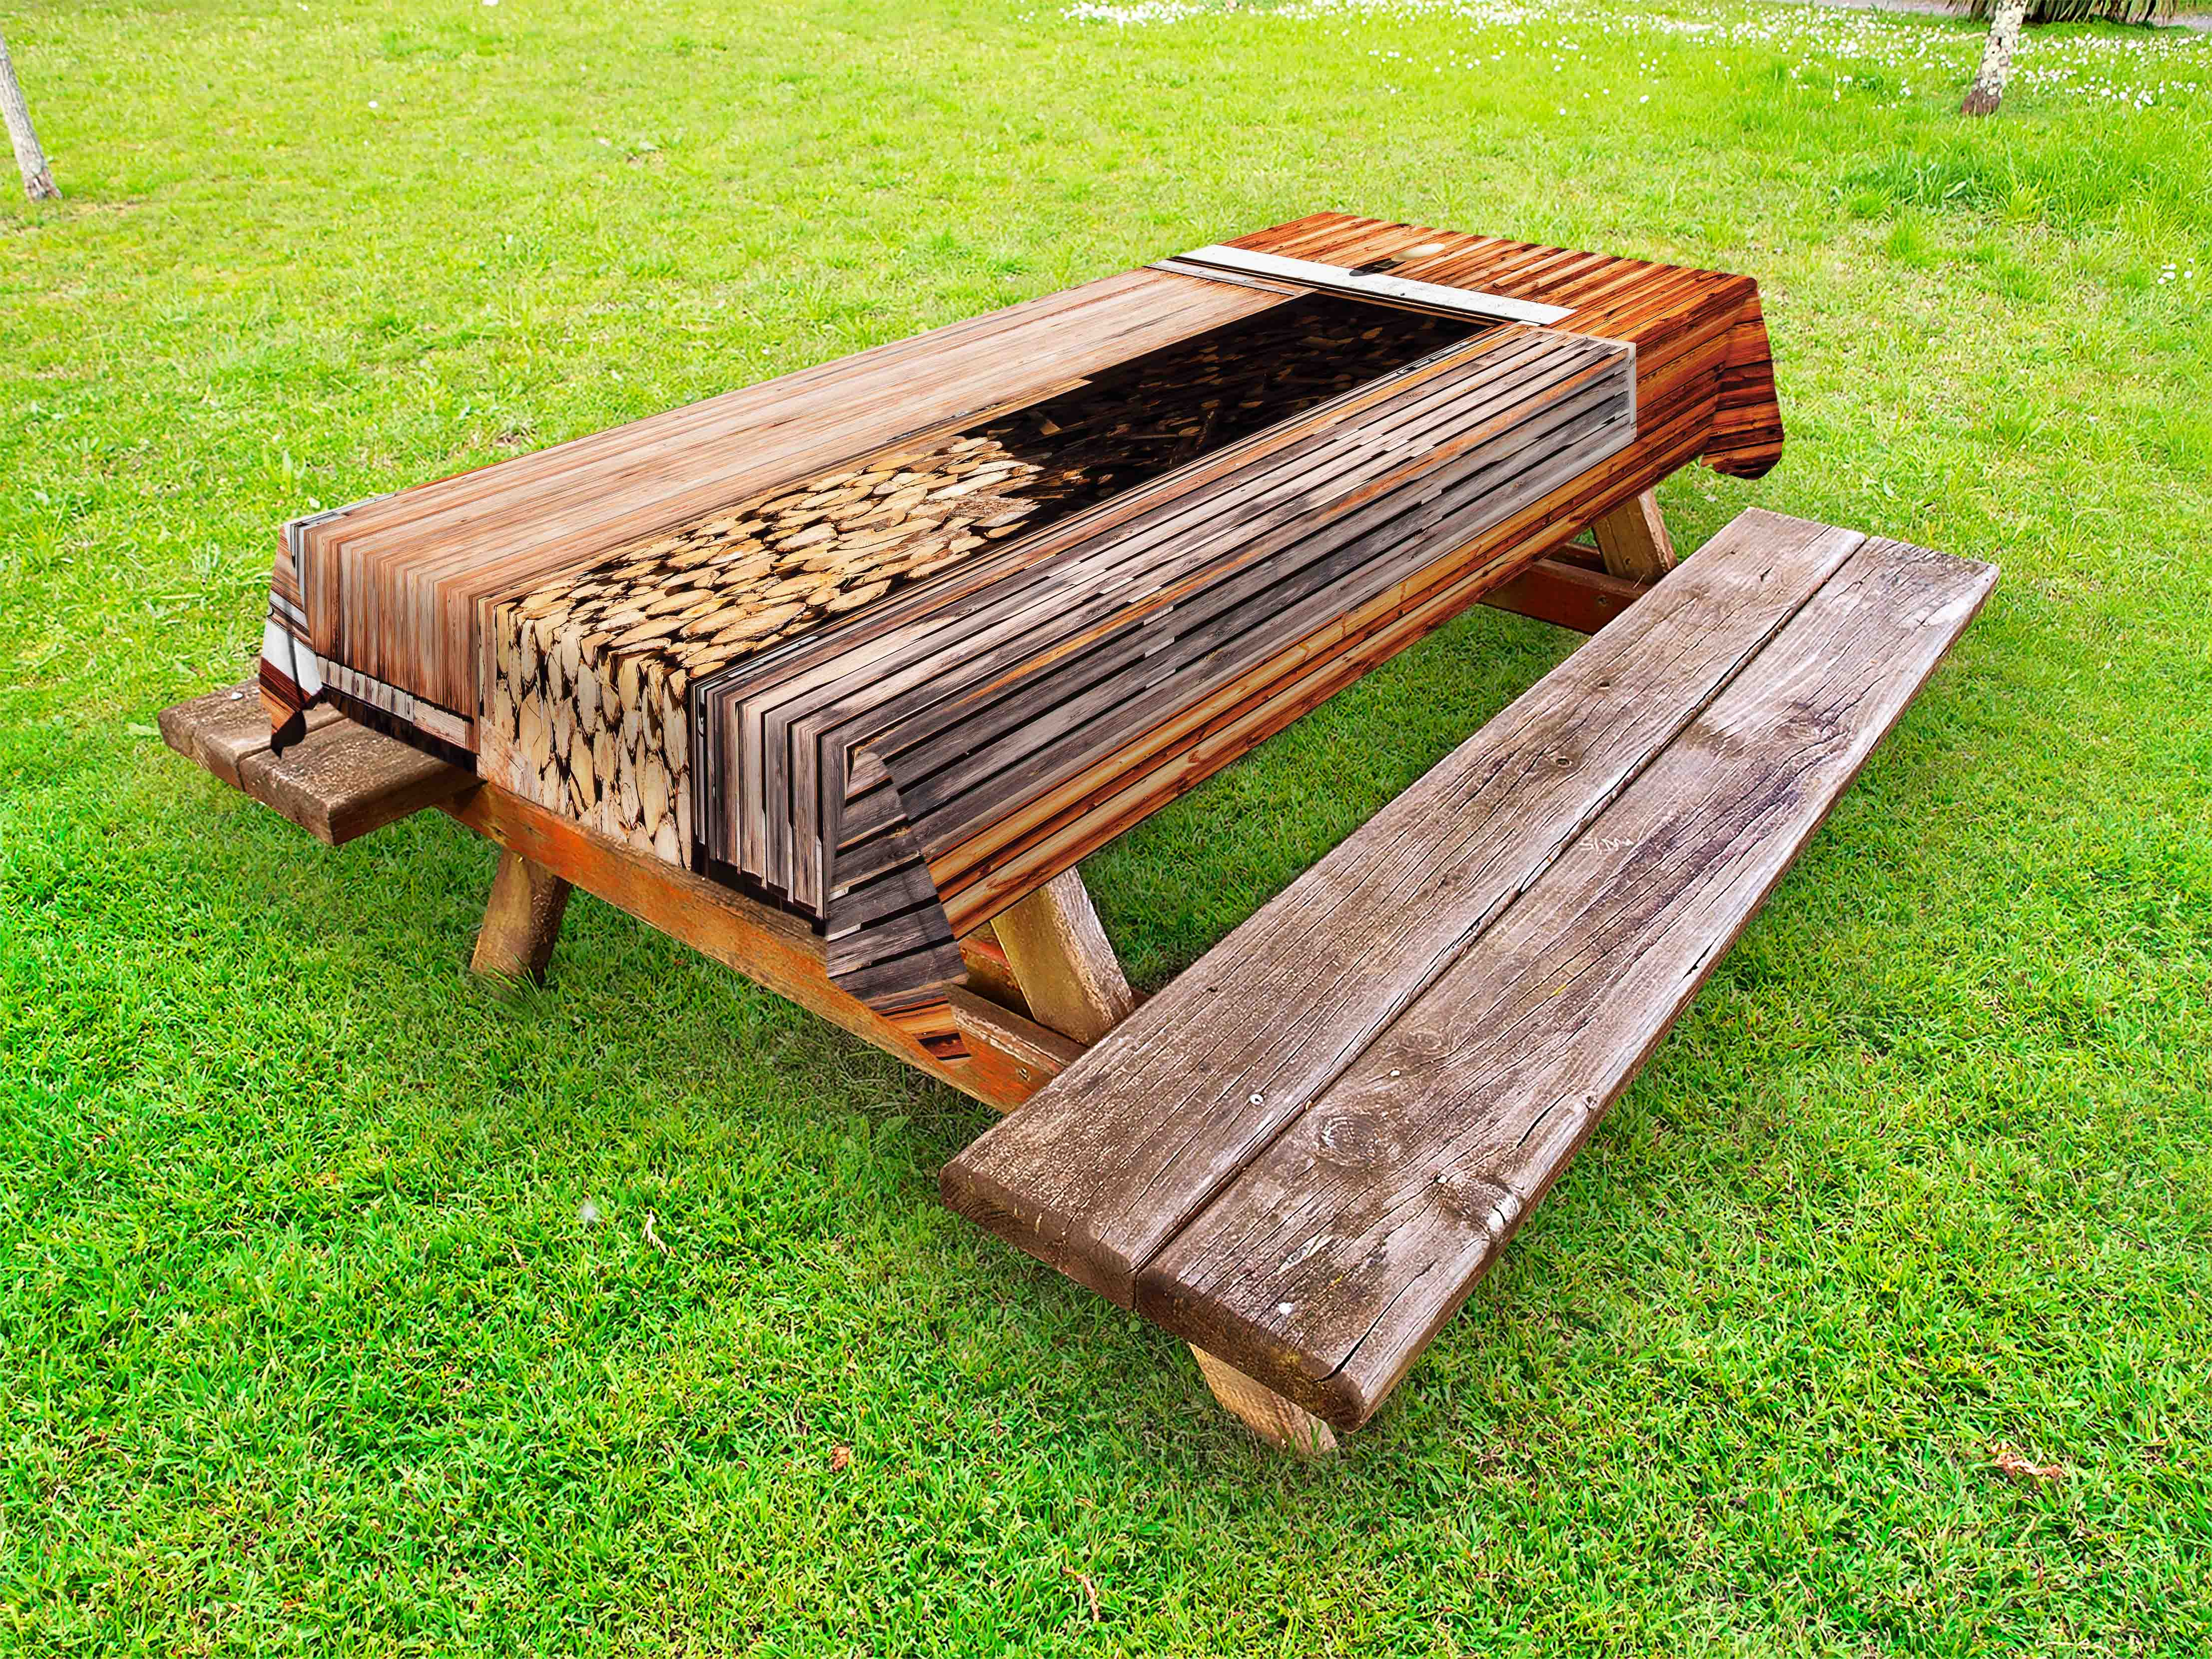 Rustic Outdoor Tablecloth, Rustic Barn With Firewood Countryside Village  Storage Garden Rural Life Concept,